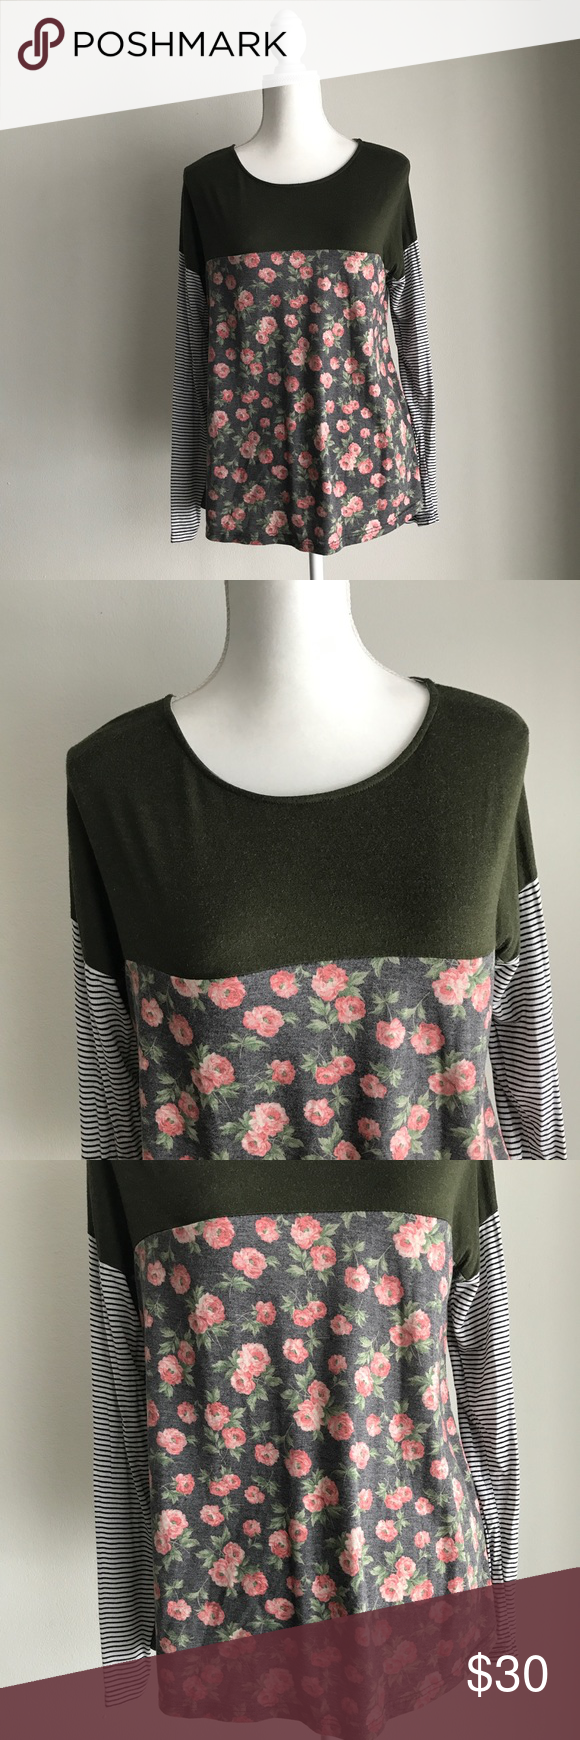 729667b52d04 Le Lis Stitch Fix Floral Striped Long Sleeve Top M Gently used. Olive Green  on